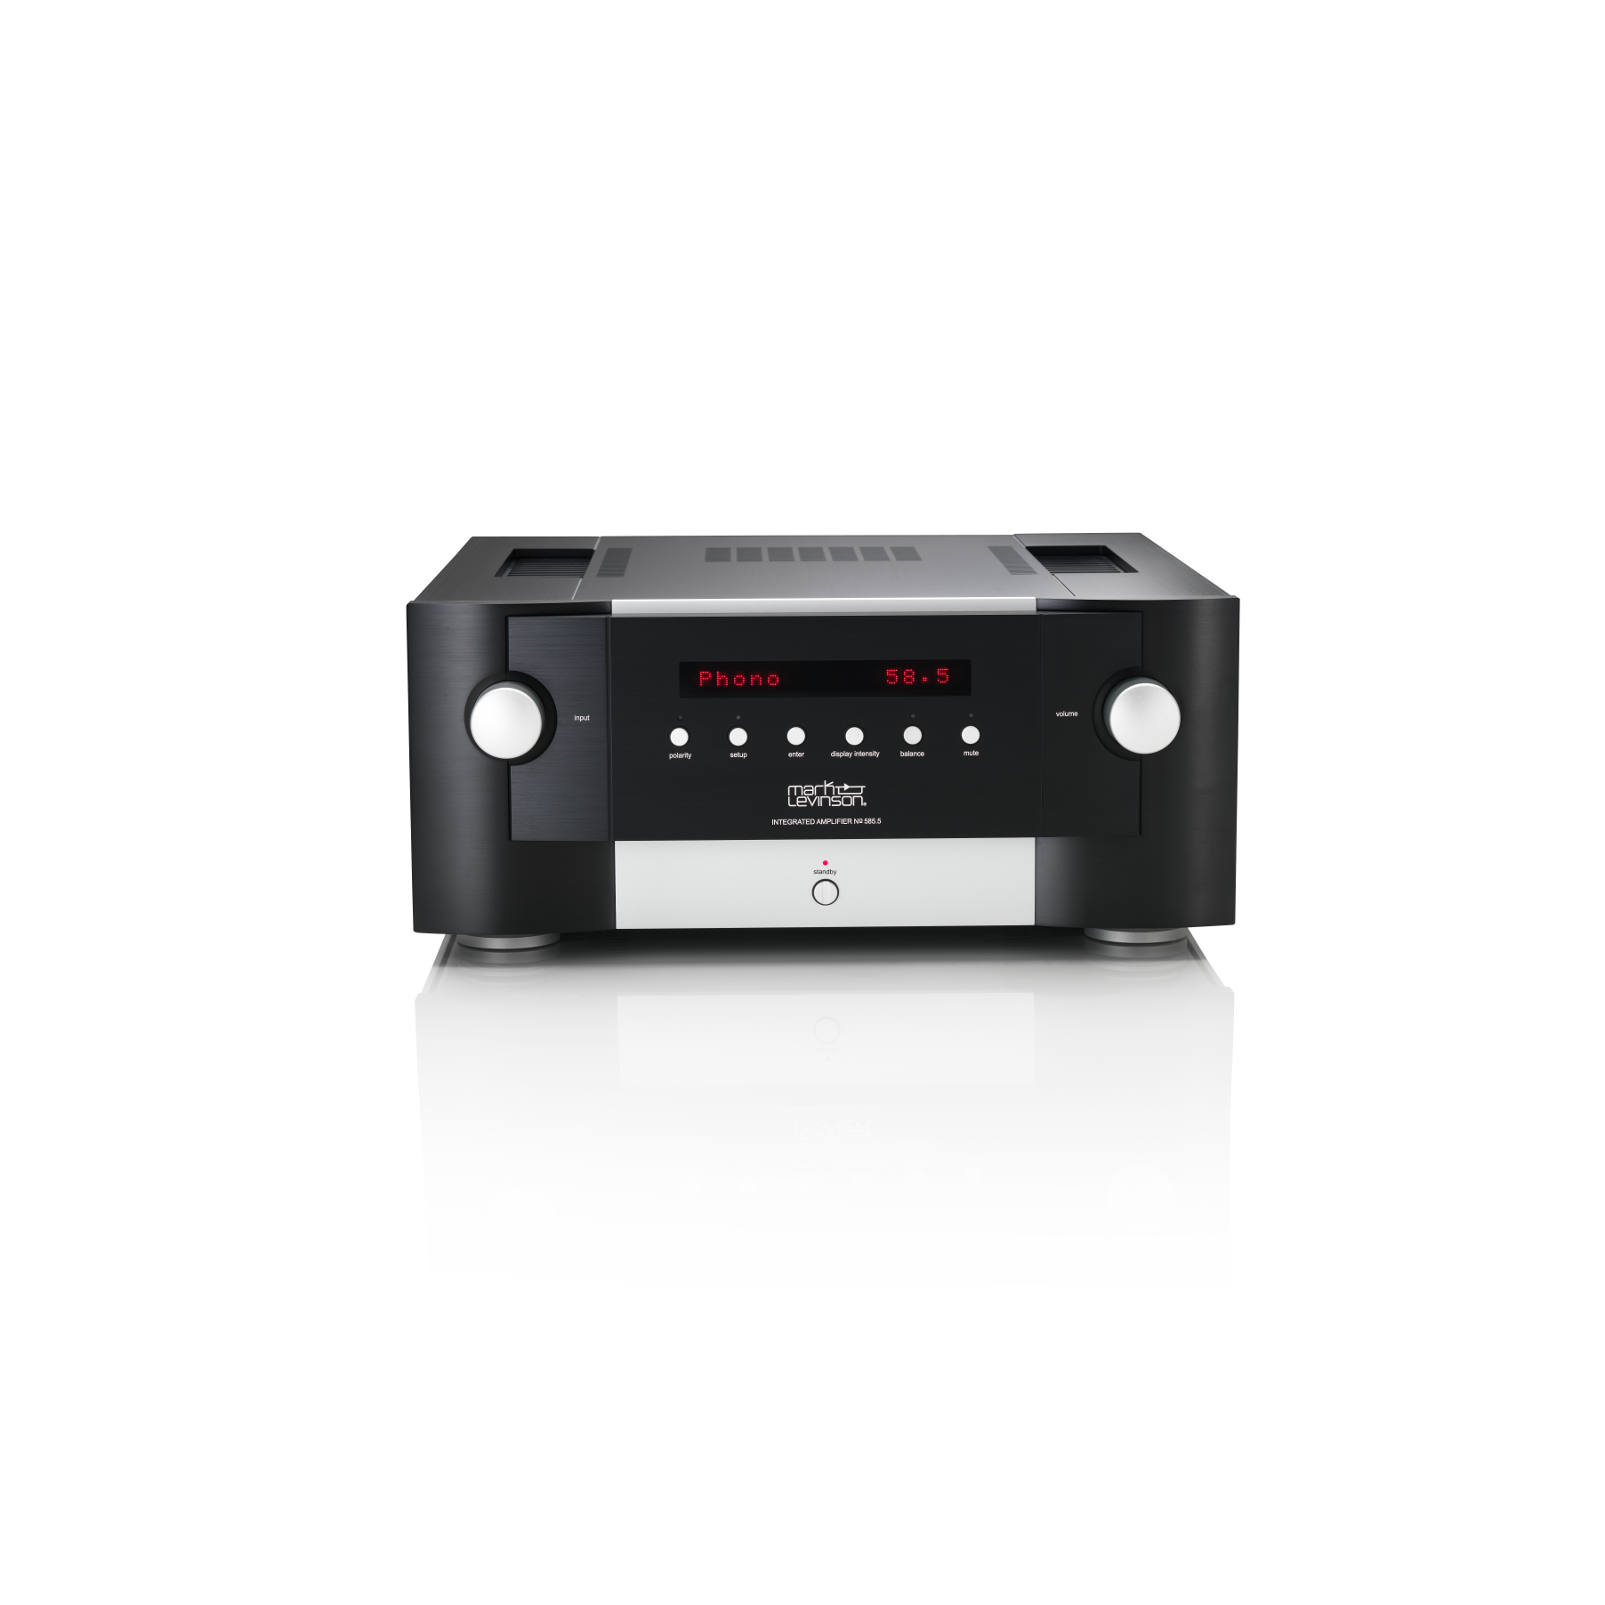 Nº585.5 - Black - Fully Discrete Integrated Amplifier with Class A Pure Phono Stage - Front